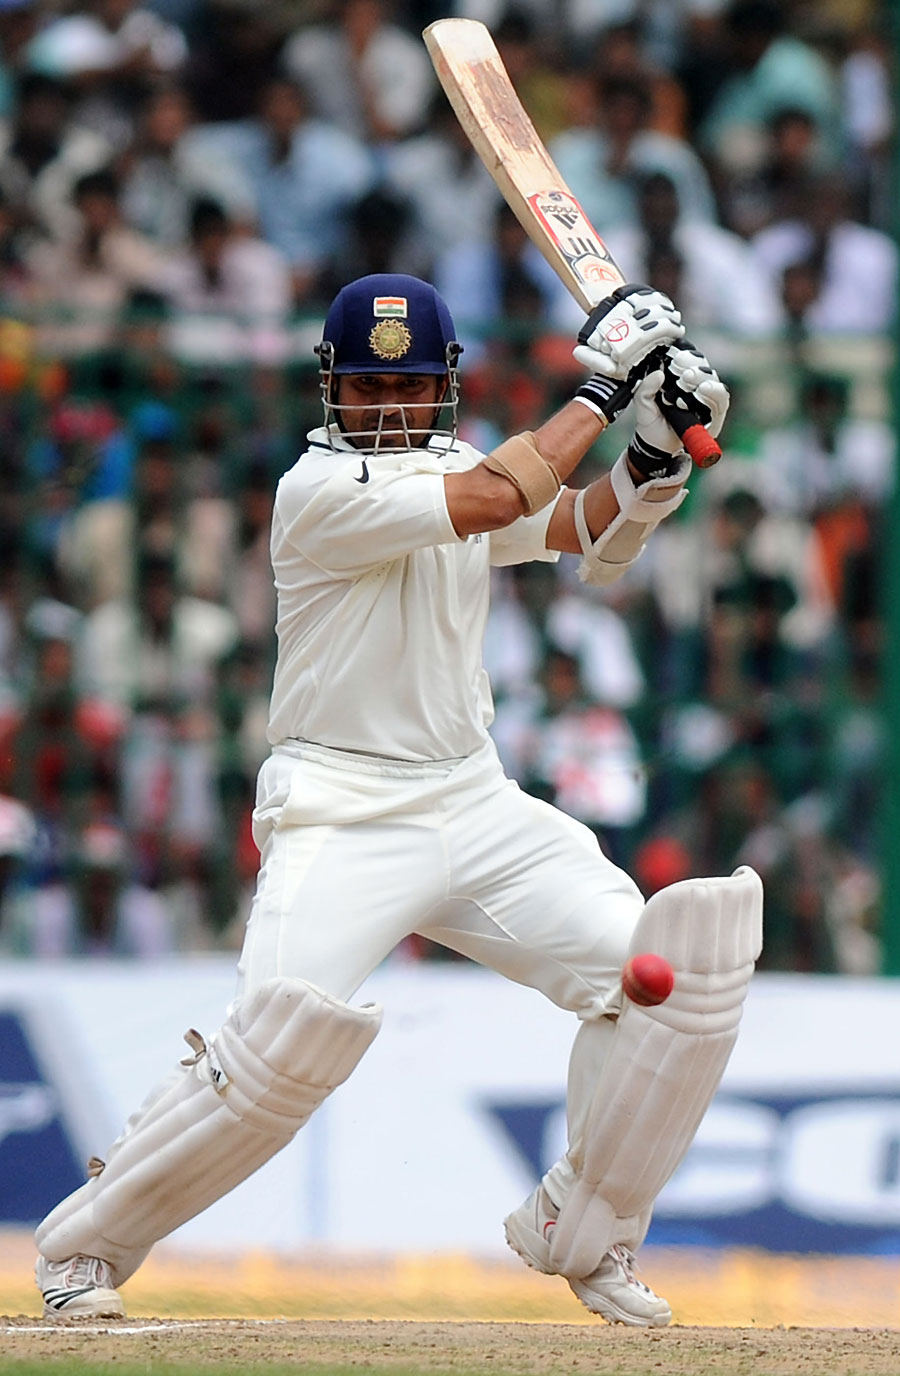 Sachin Tendulkar Looked In Imperious Form, India V Australia, 2nd Test, Bangalore, 5th Day, October 13, 2010